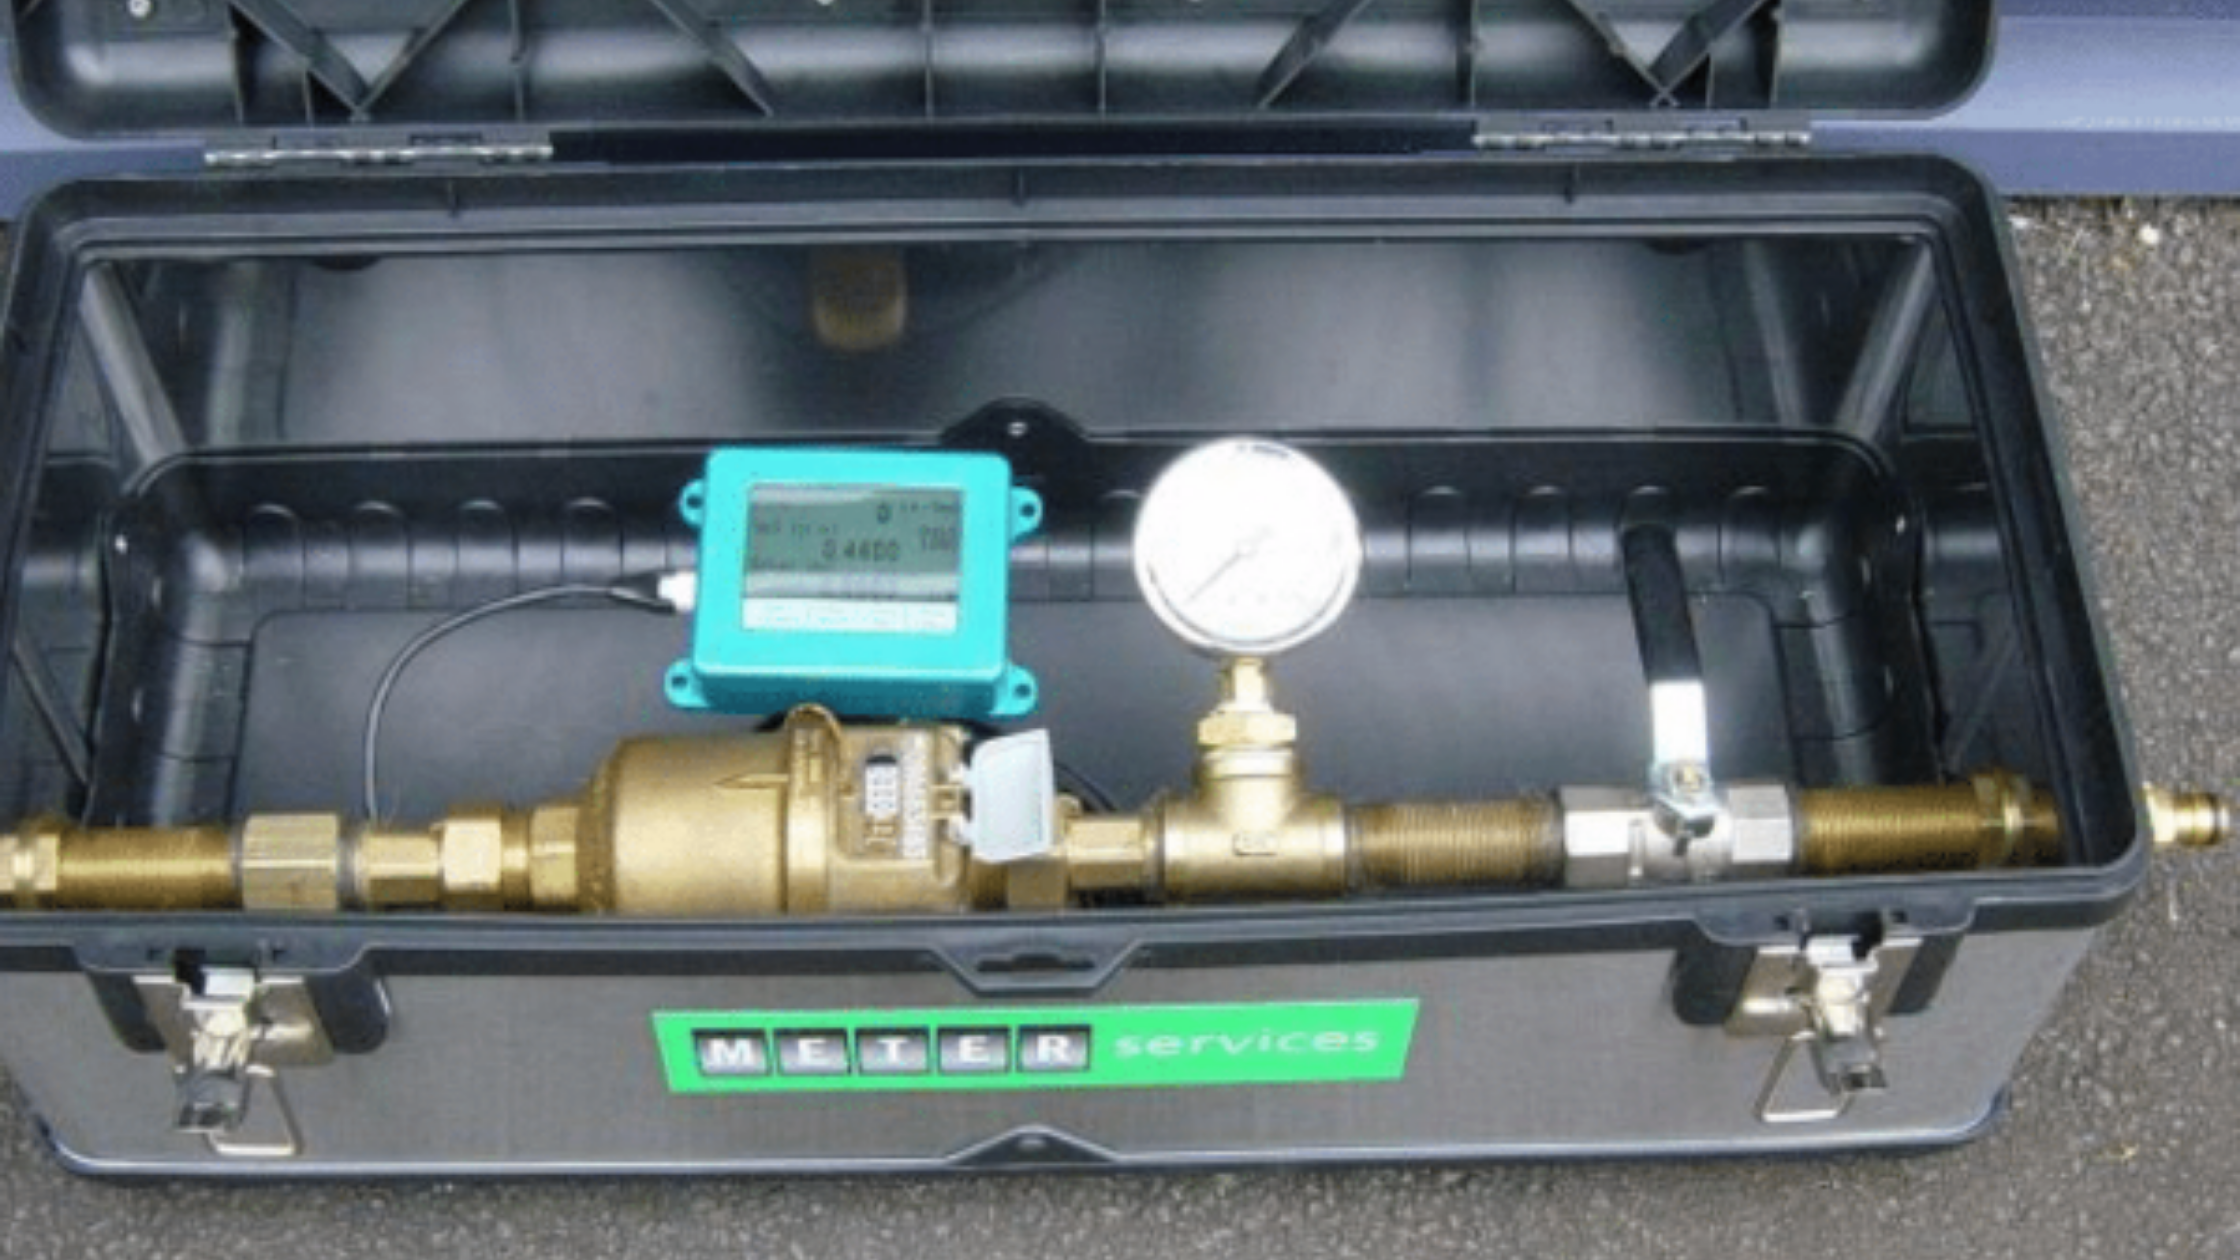 Is your flow meter accurate?